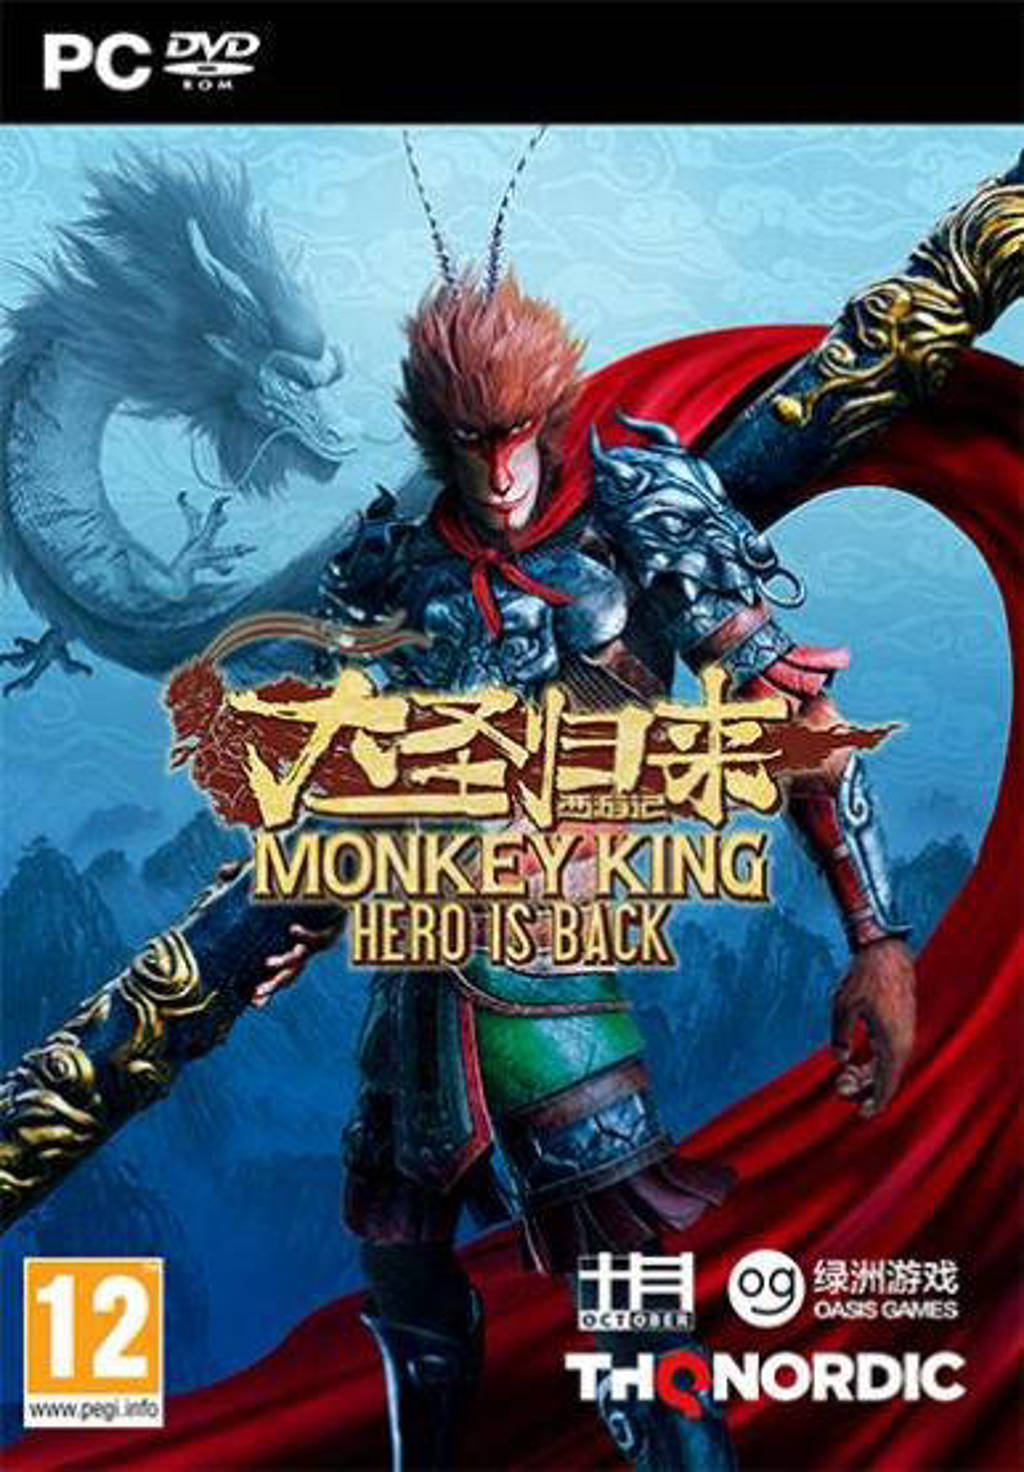 Monkey King - Hero is Back (PC)